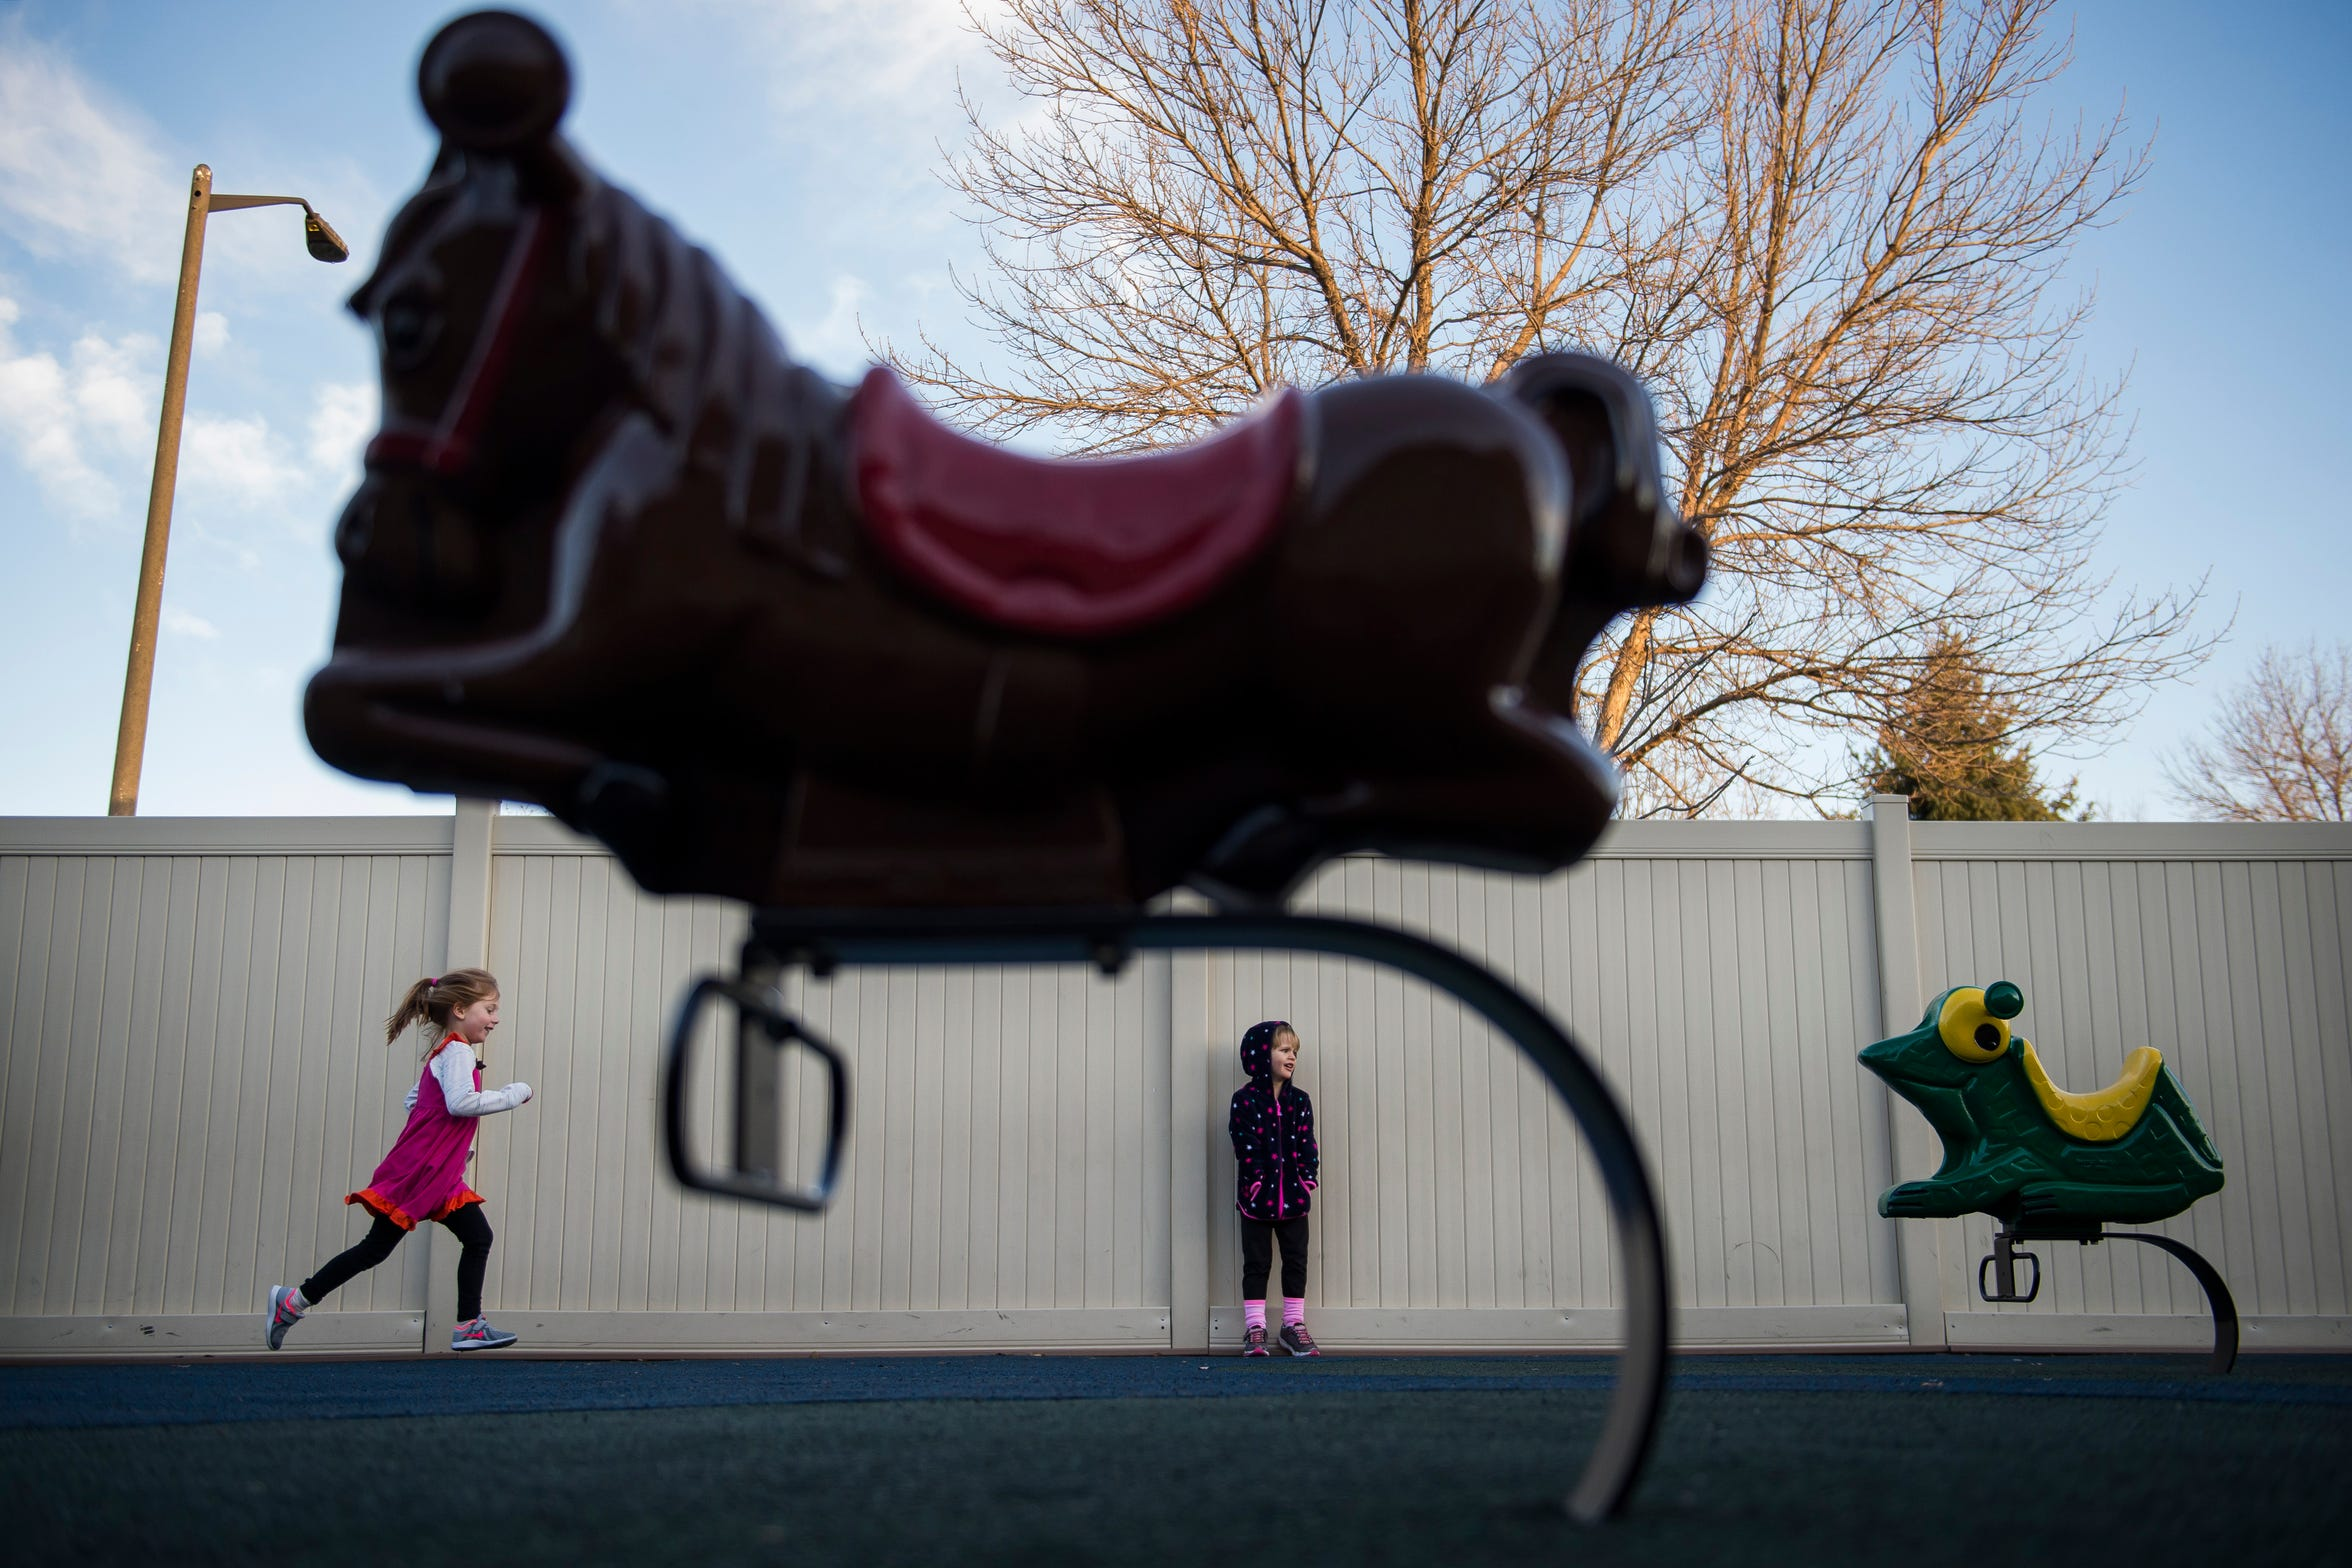 Scarlett Archer, 4, runs through the playground area while Roz Nitchie-Shonka, 4, looks on during a recess time on Thursday, Nov. 15, 2018, at The Learning Experience child development center in Fort Collins, Colo.